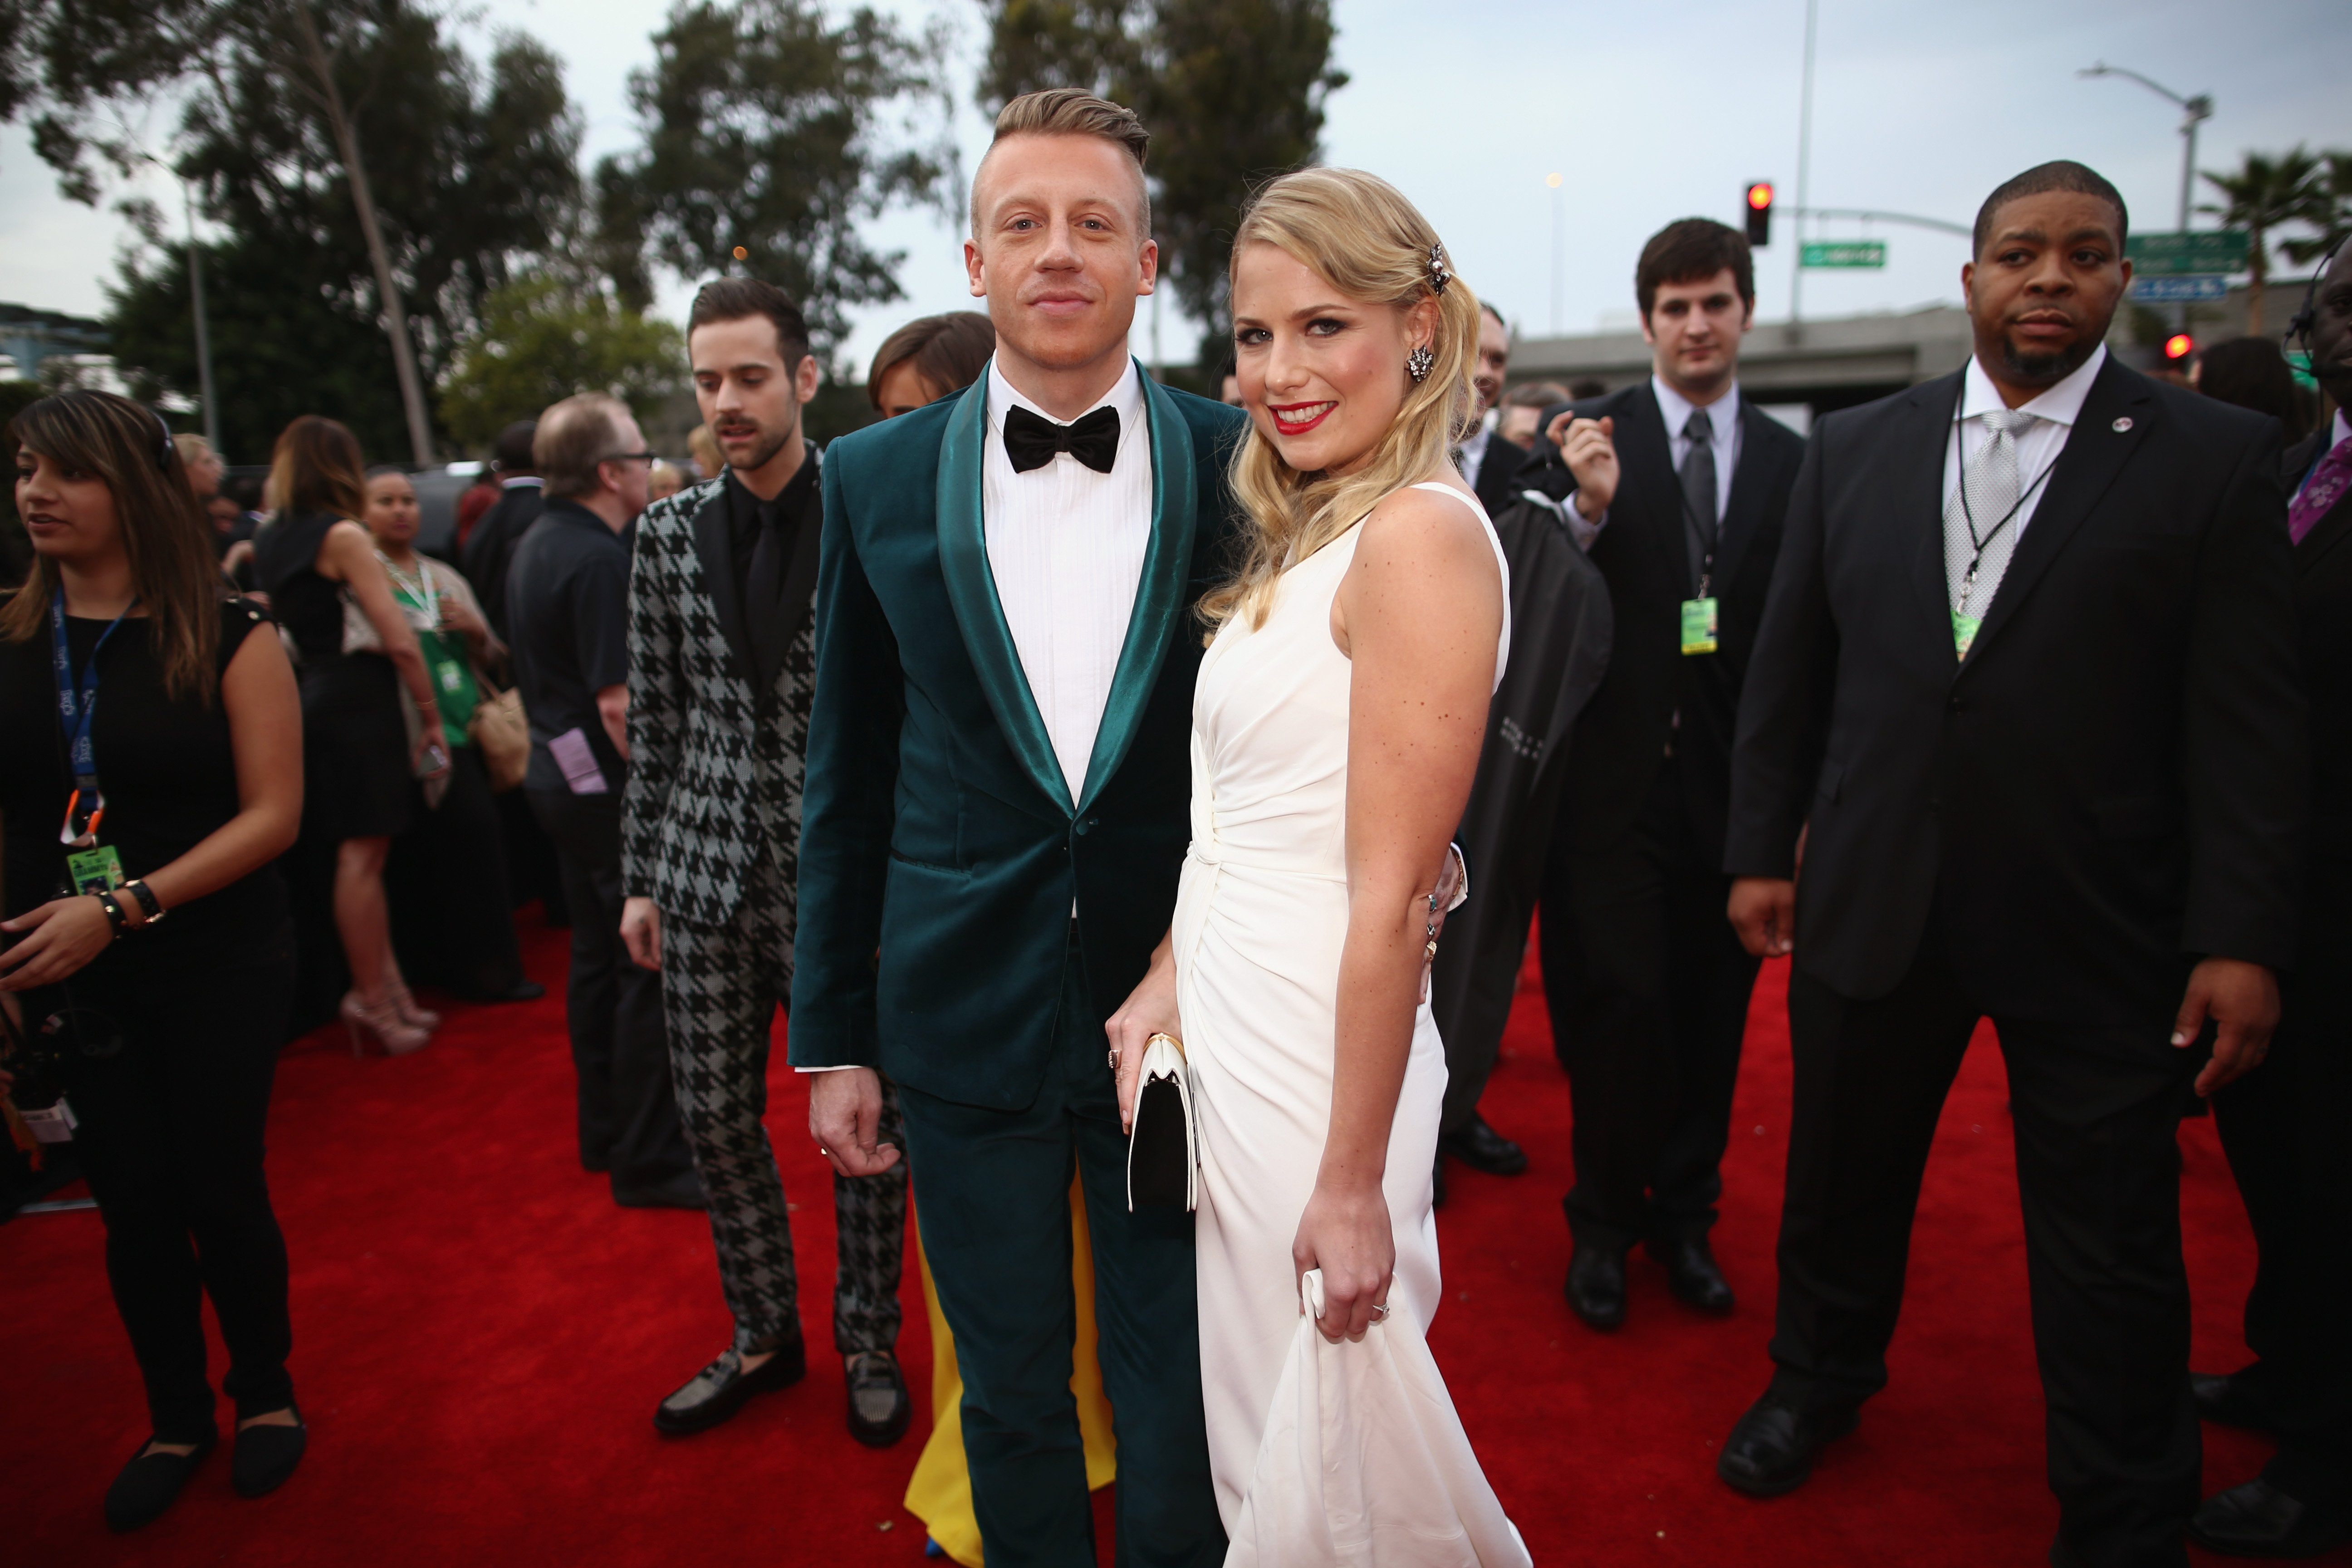 Macklemore and Tricia Davis pictured at the 56th Grammy Awards at Staples Center, 20214, Los Angeles California.   Photo: Getty Images